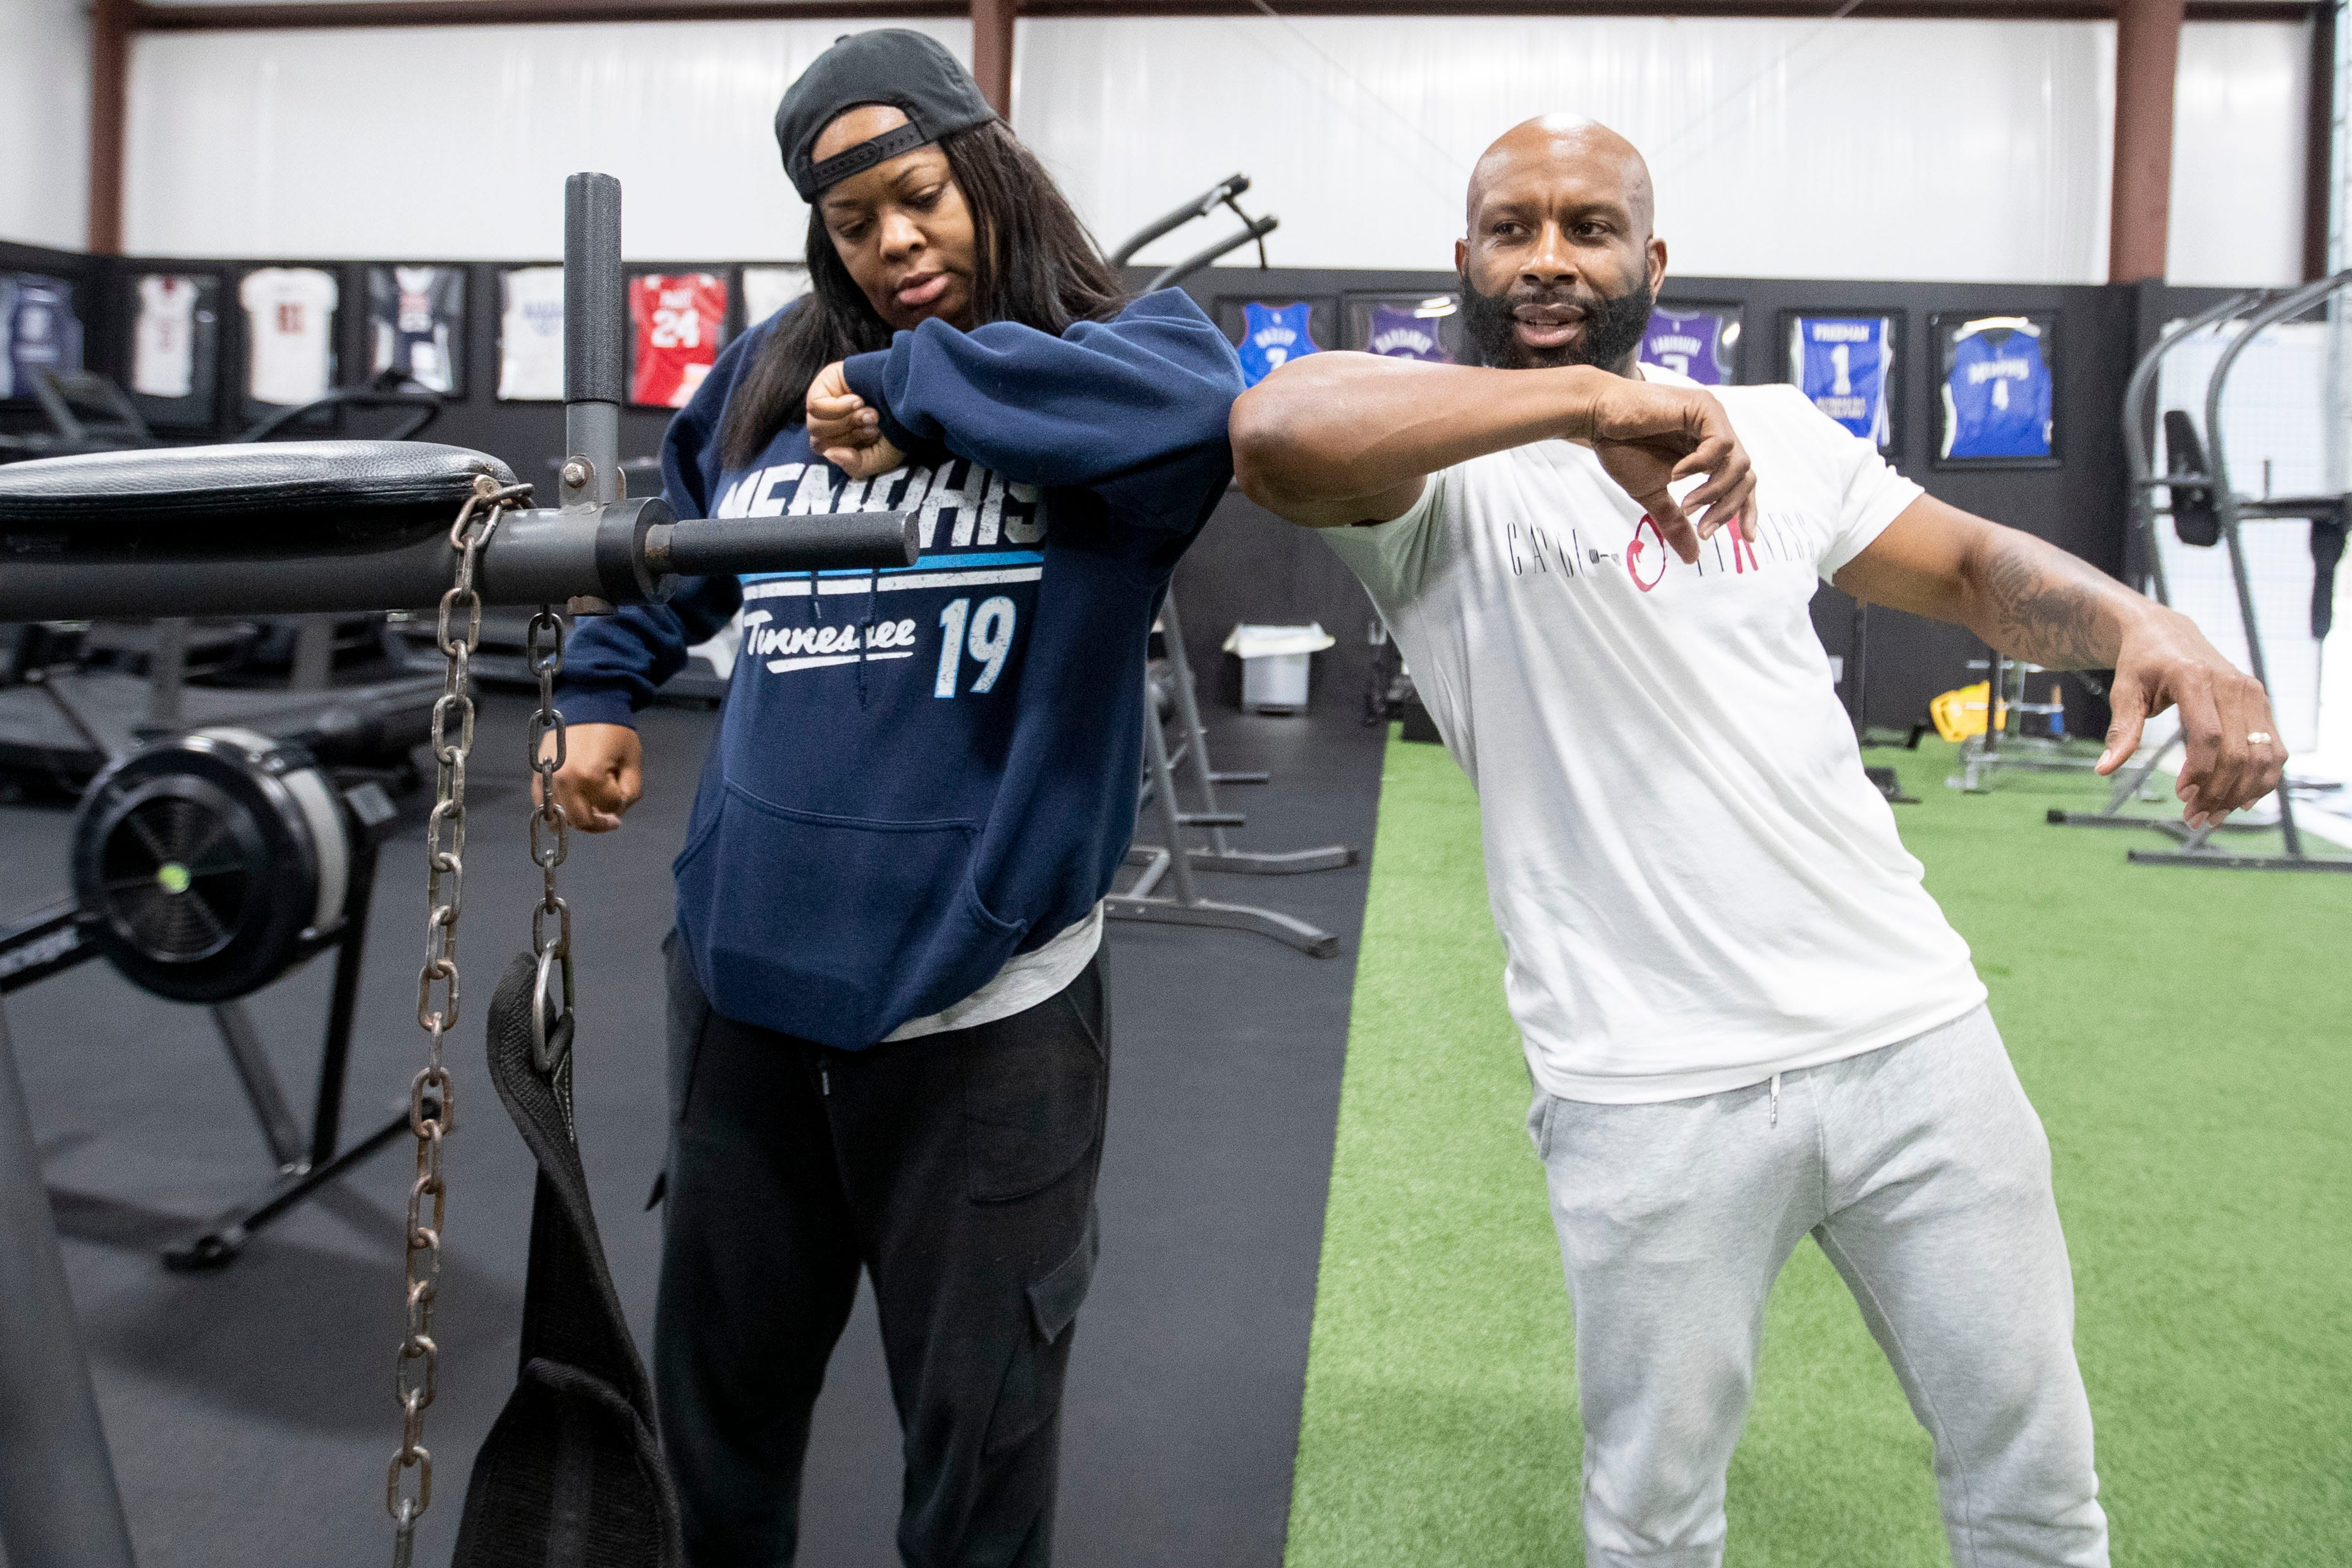 Even the way we say hello has changed. Personal trainer Odie Tolbert, right, elbow-bumps Annika Adams after a workout at Shabazz Fitness in Cordova, Tenn., on March 18.